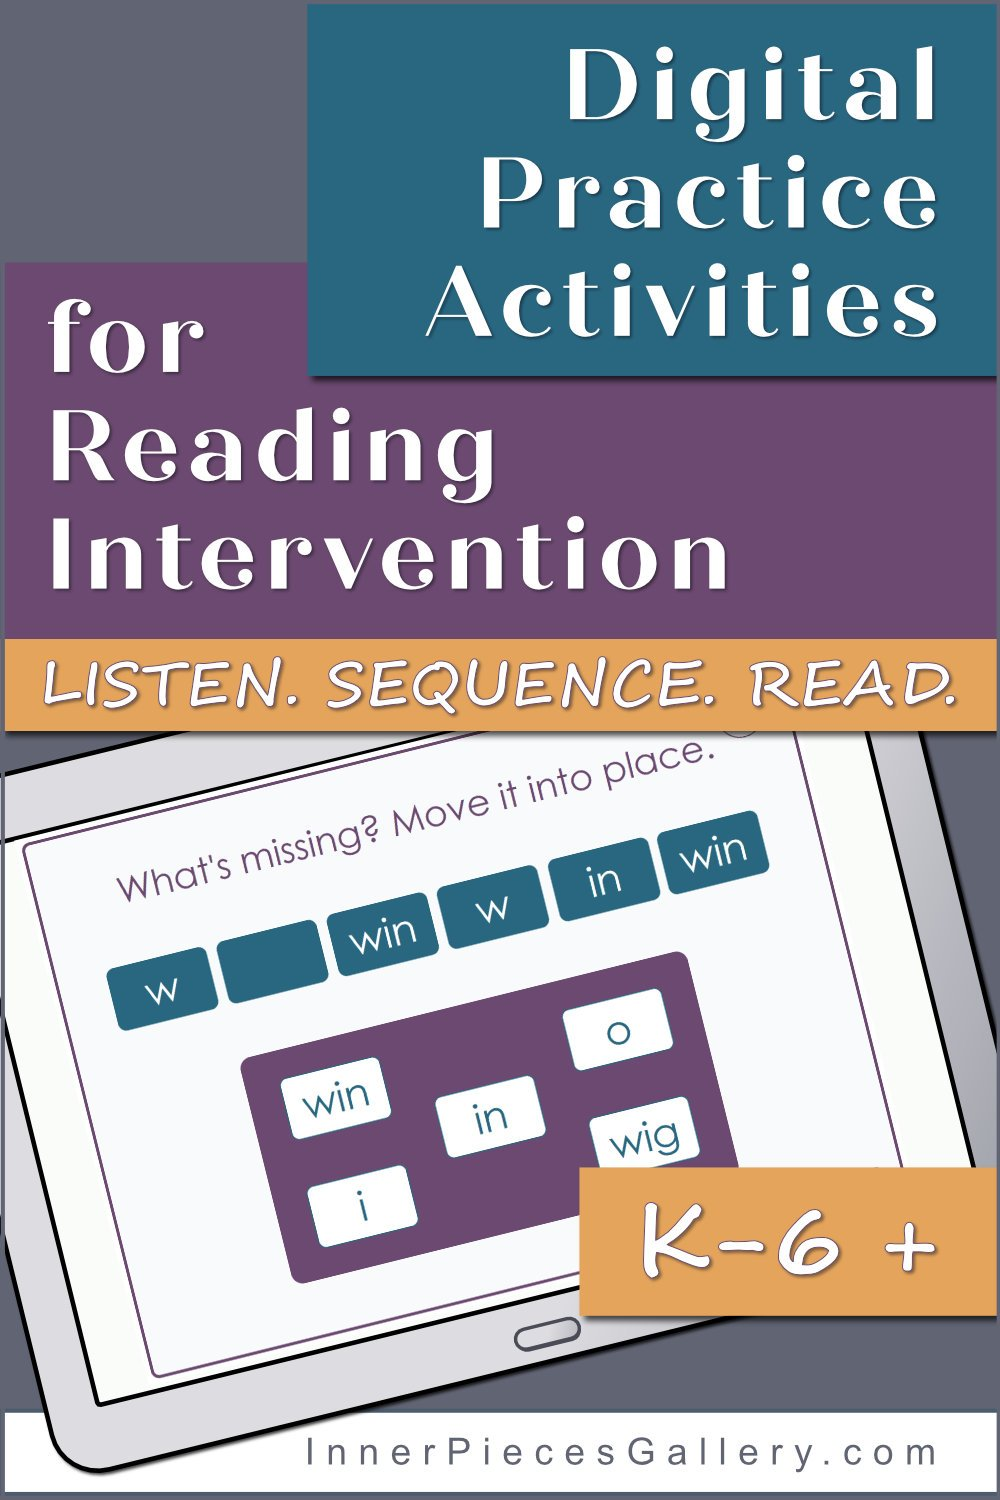 Tablet computer with sample activity in purple and teal plus orange. Headline reads: Digital Practice Activities for Reading Intervention. Listen. Sequence, Read. K-6+